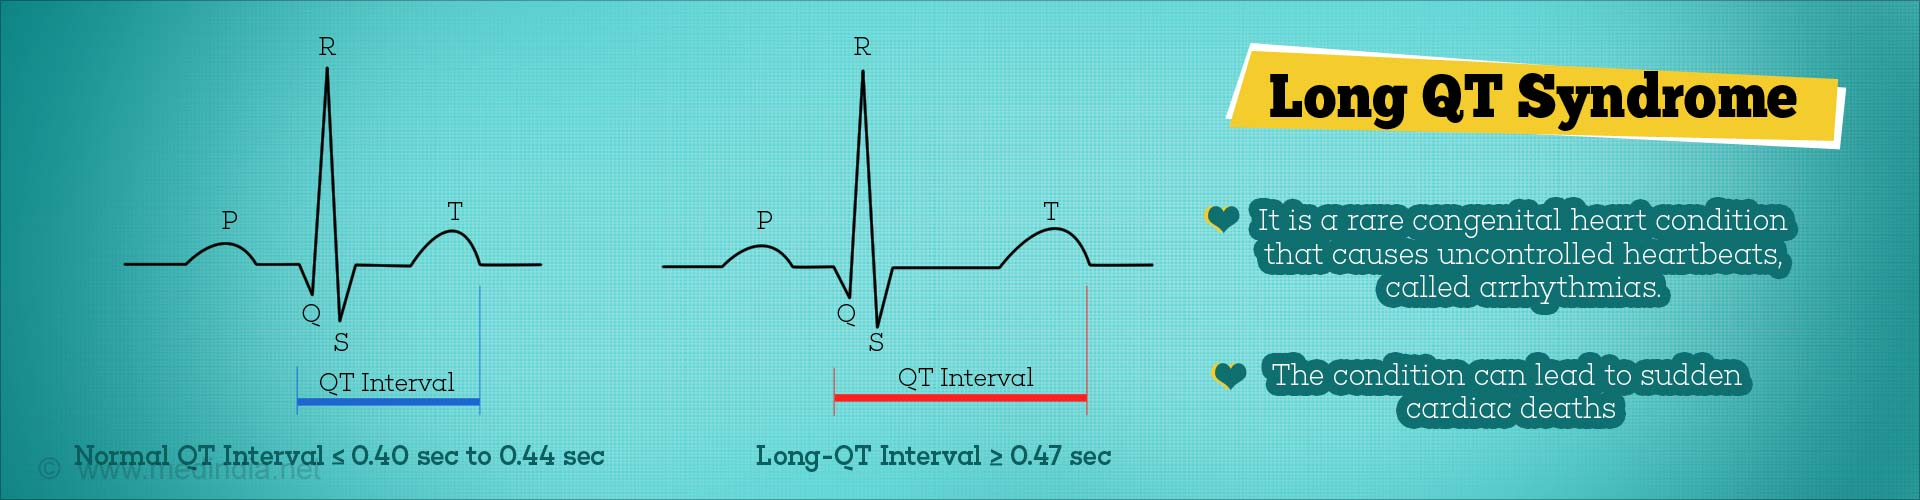 Long QT Syndrome